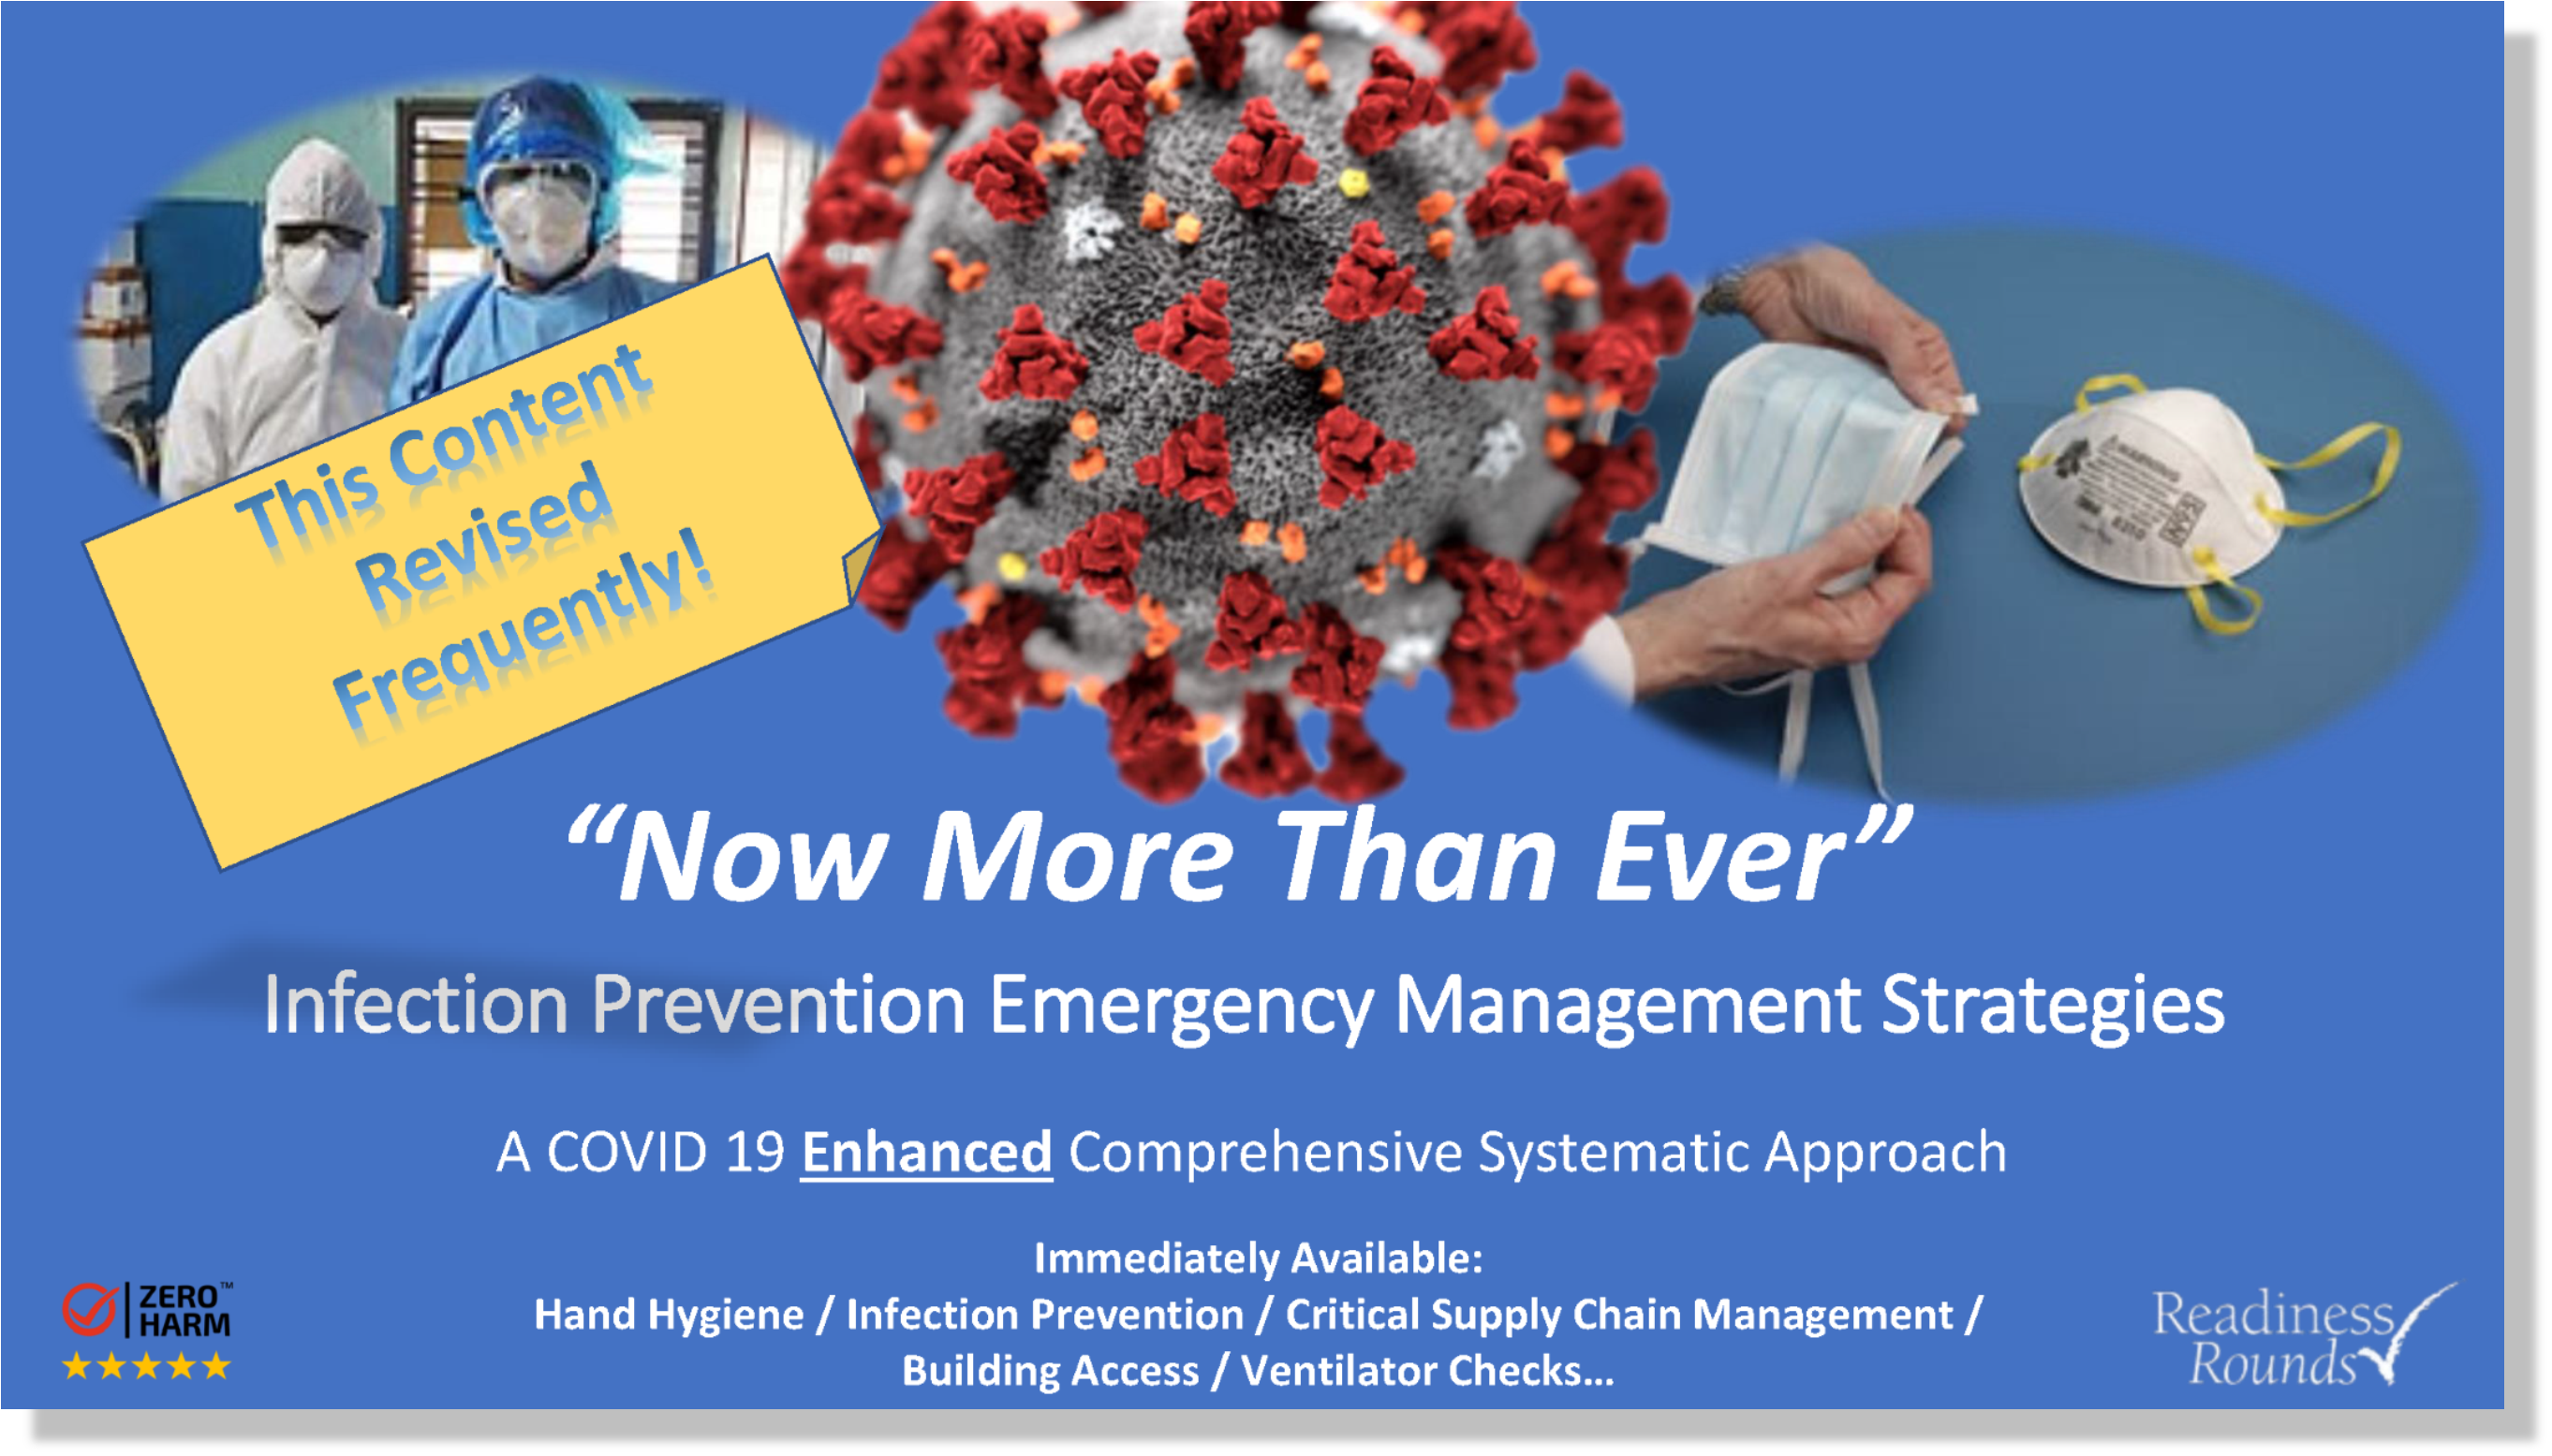 Infection Prevention Emergency Management Strategies - New Cover - 04212020